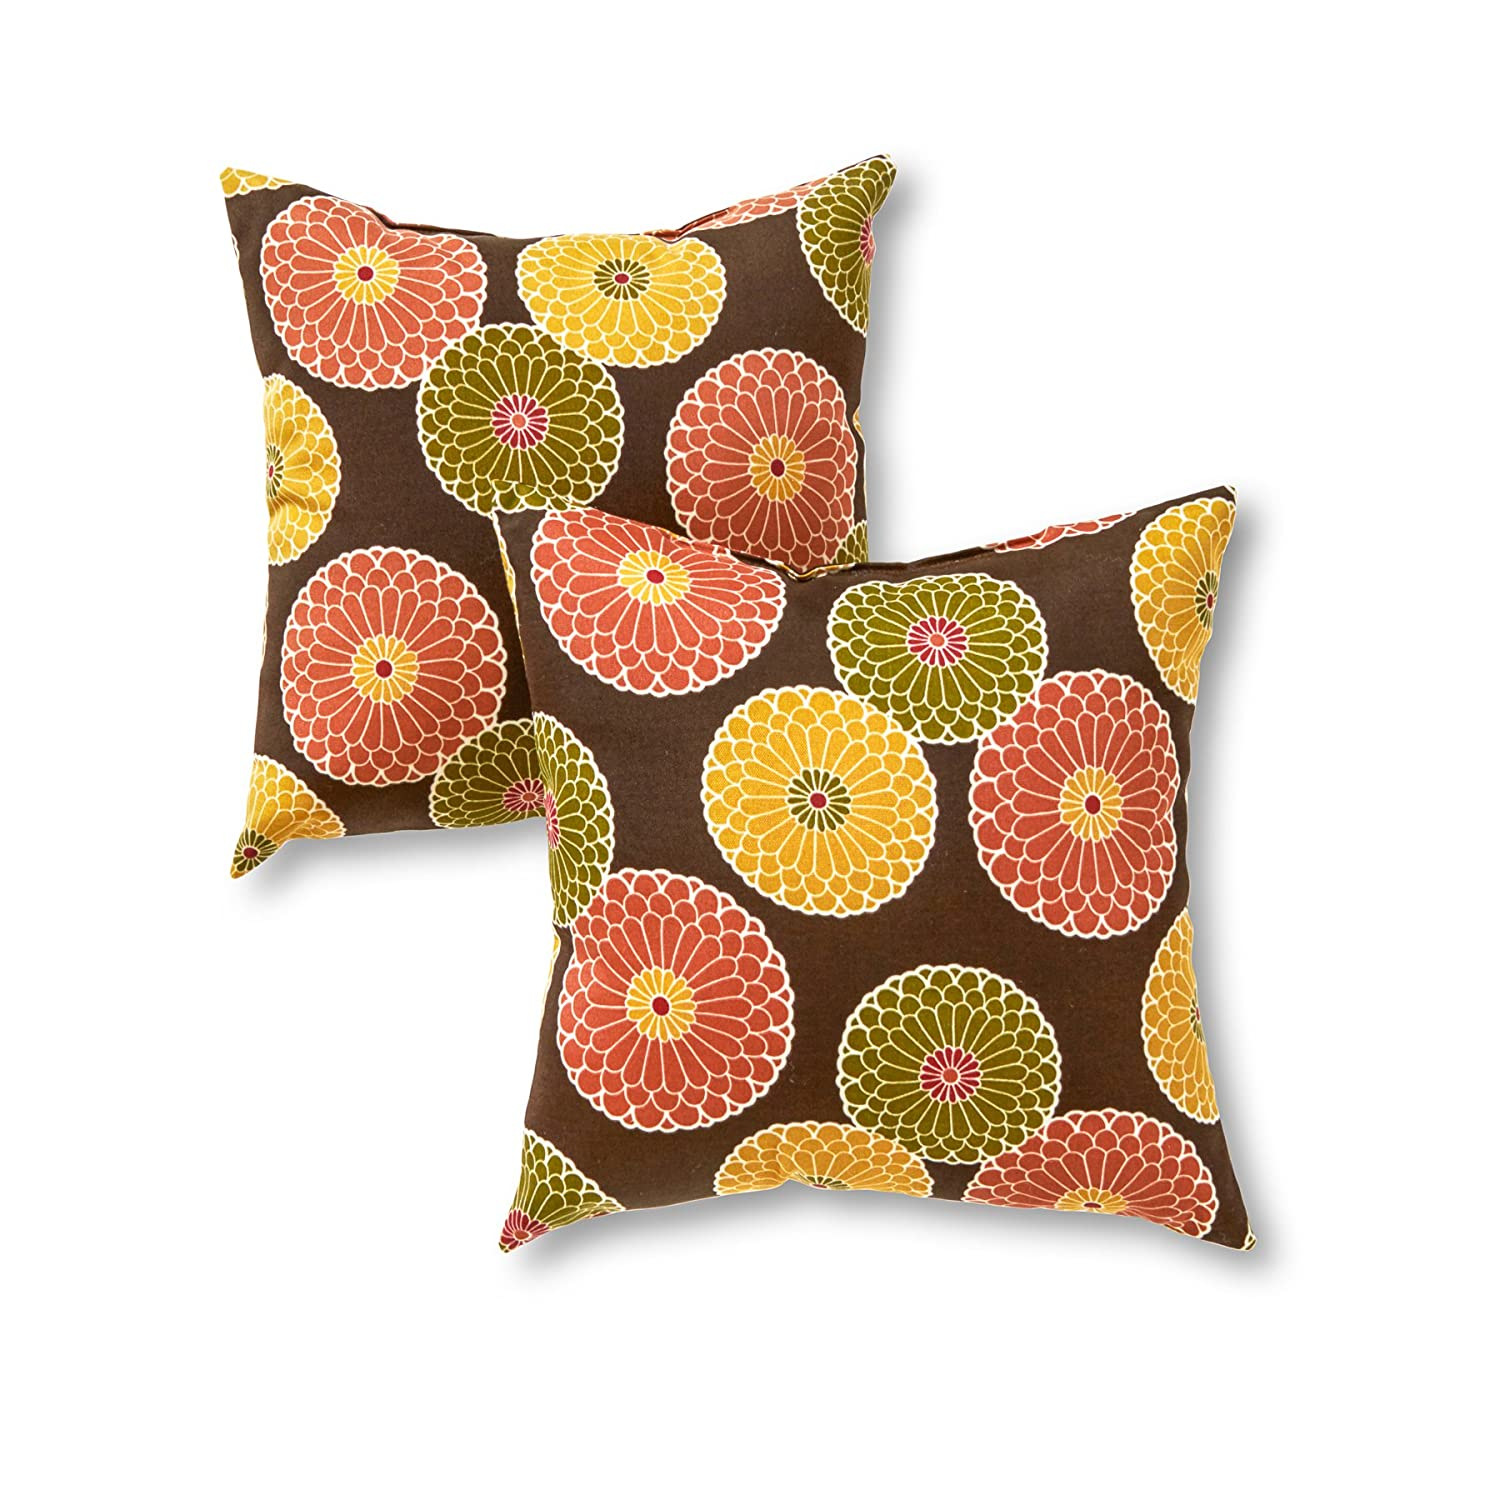 Unique Decorative Accent Pillows : Home Indoor Outdoor Accent Pillows Decorative Designer Decorator Set of 2 New eBay